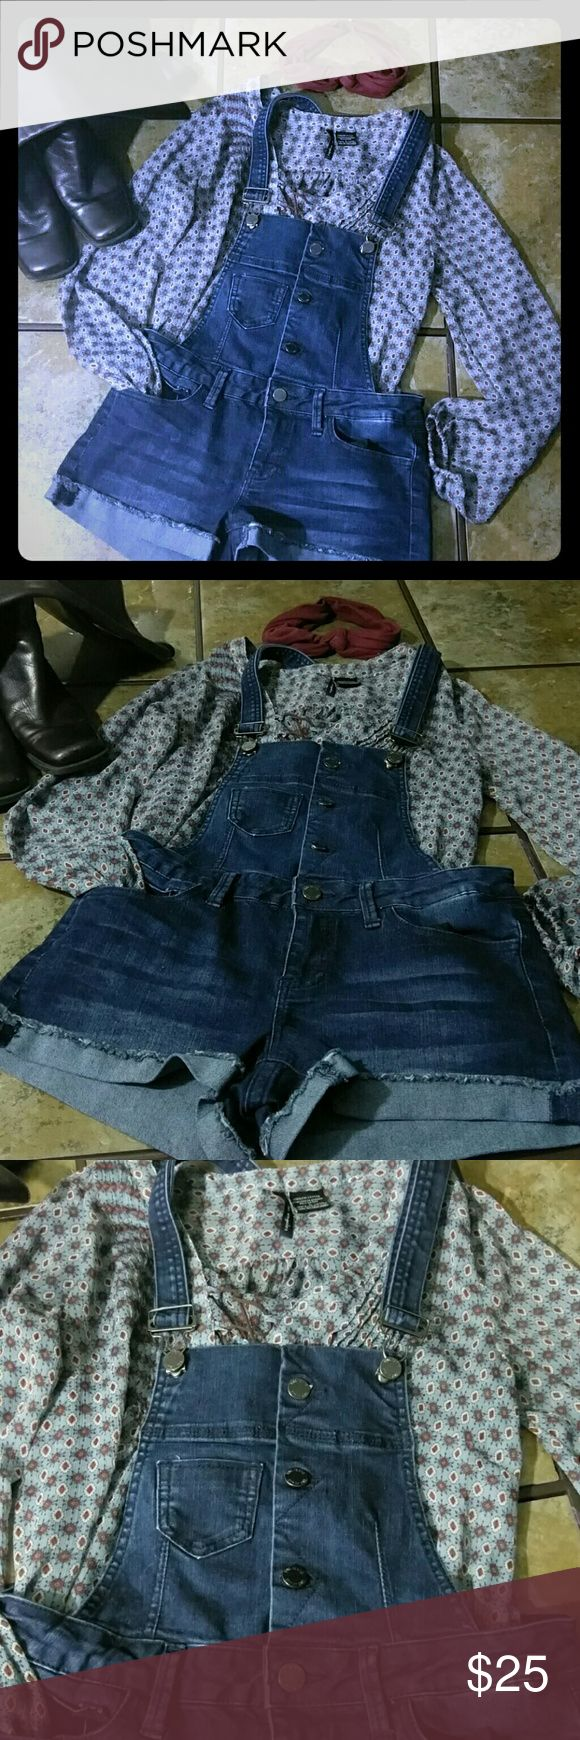 "Denim Jumper shorts Size ""5"" juniors, similar to xs-small women's size Dark colored jean By Ymi jeans Straps unfasten and are adjustable in length  Buttons down the front are functional Functional front and back pockets Belt loops for further adjustments"